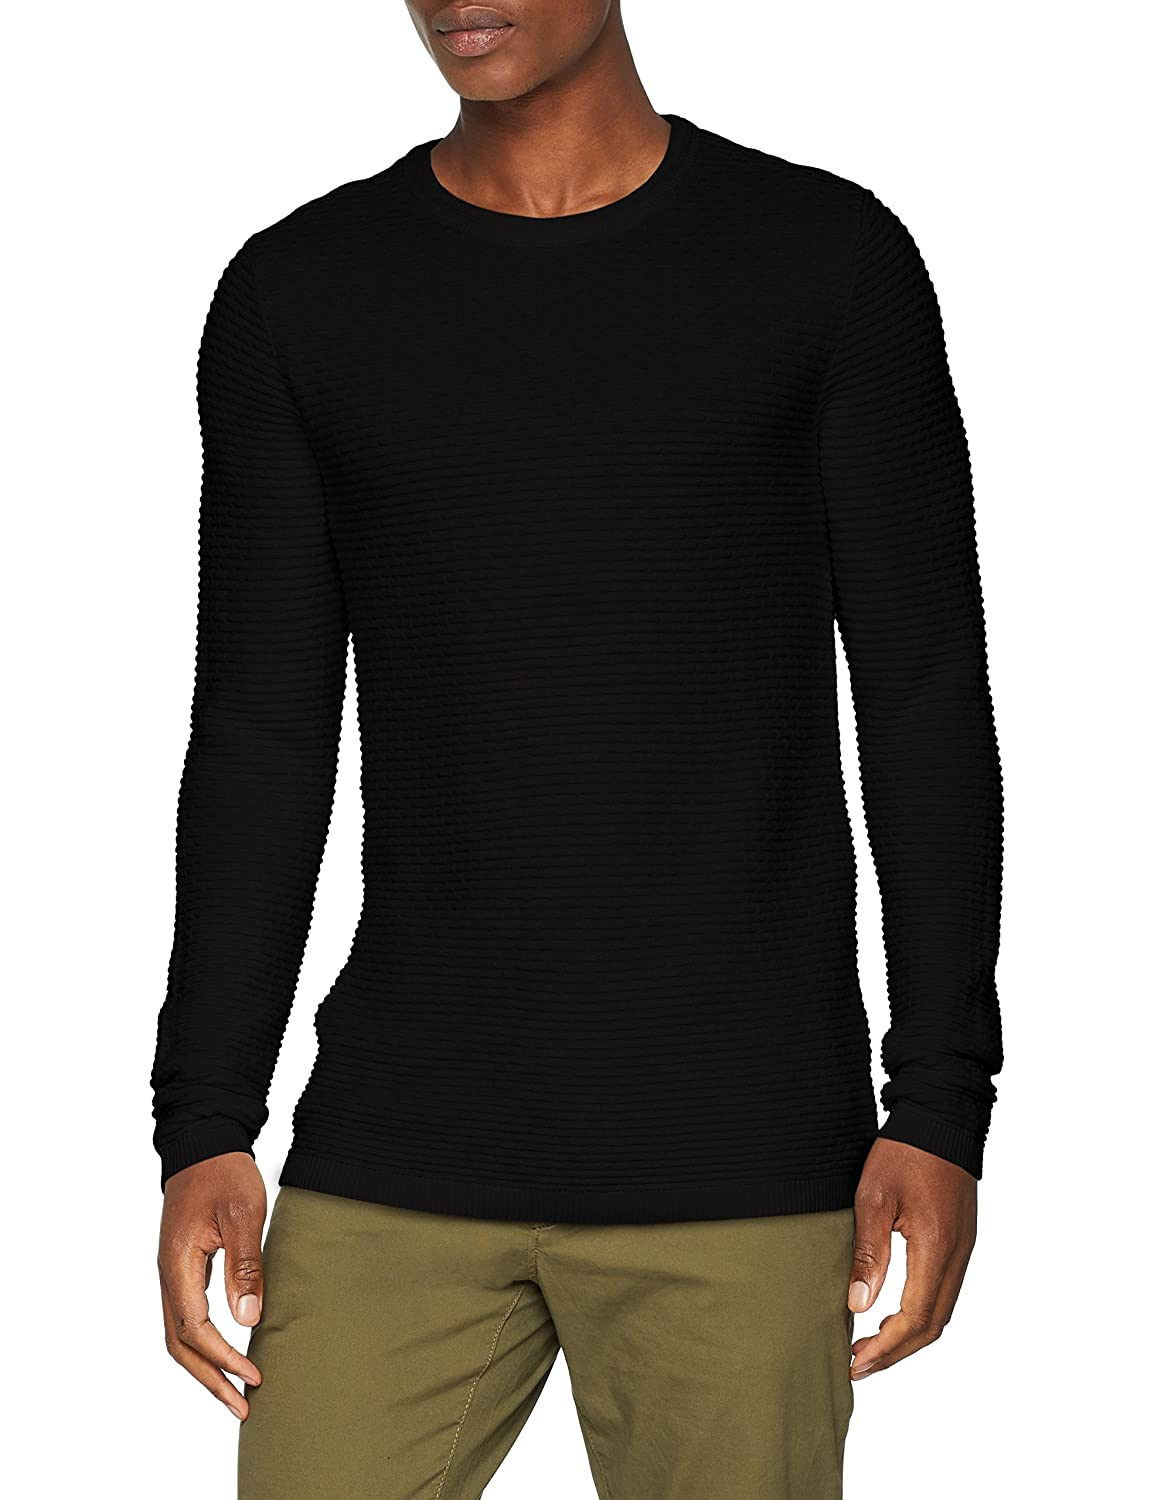 SELECTED HOMME Slhnewdean Crew Neck W Noos, suéter para Hombre